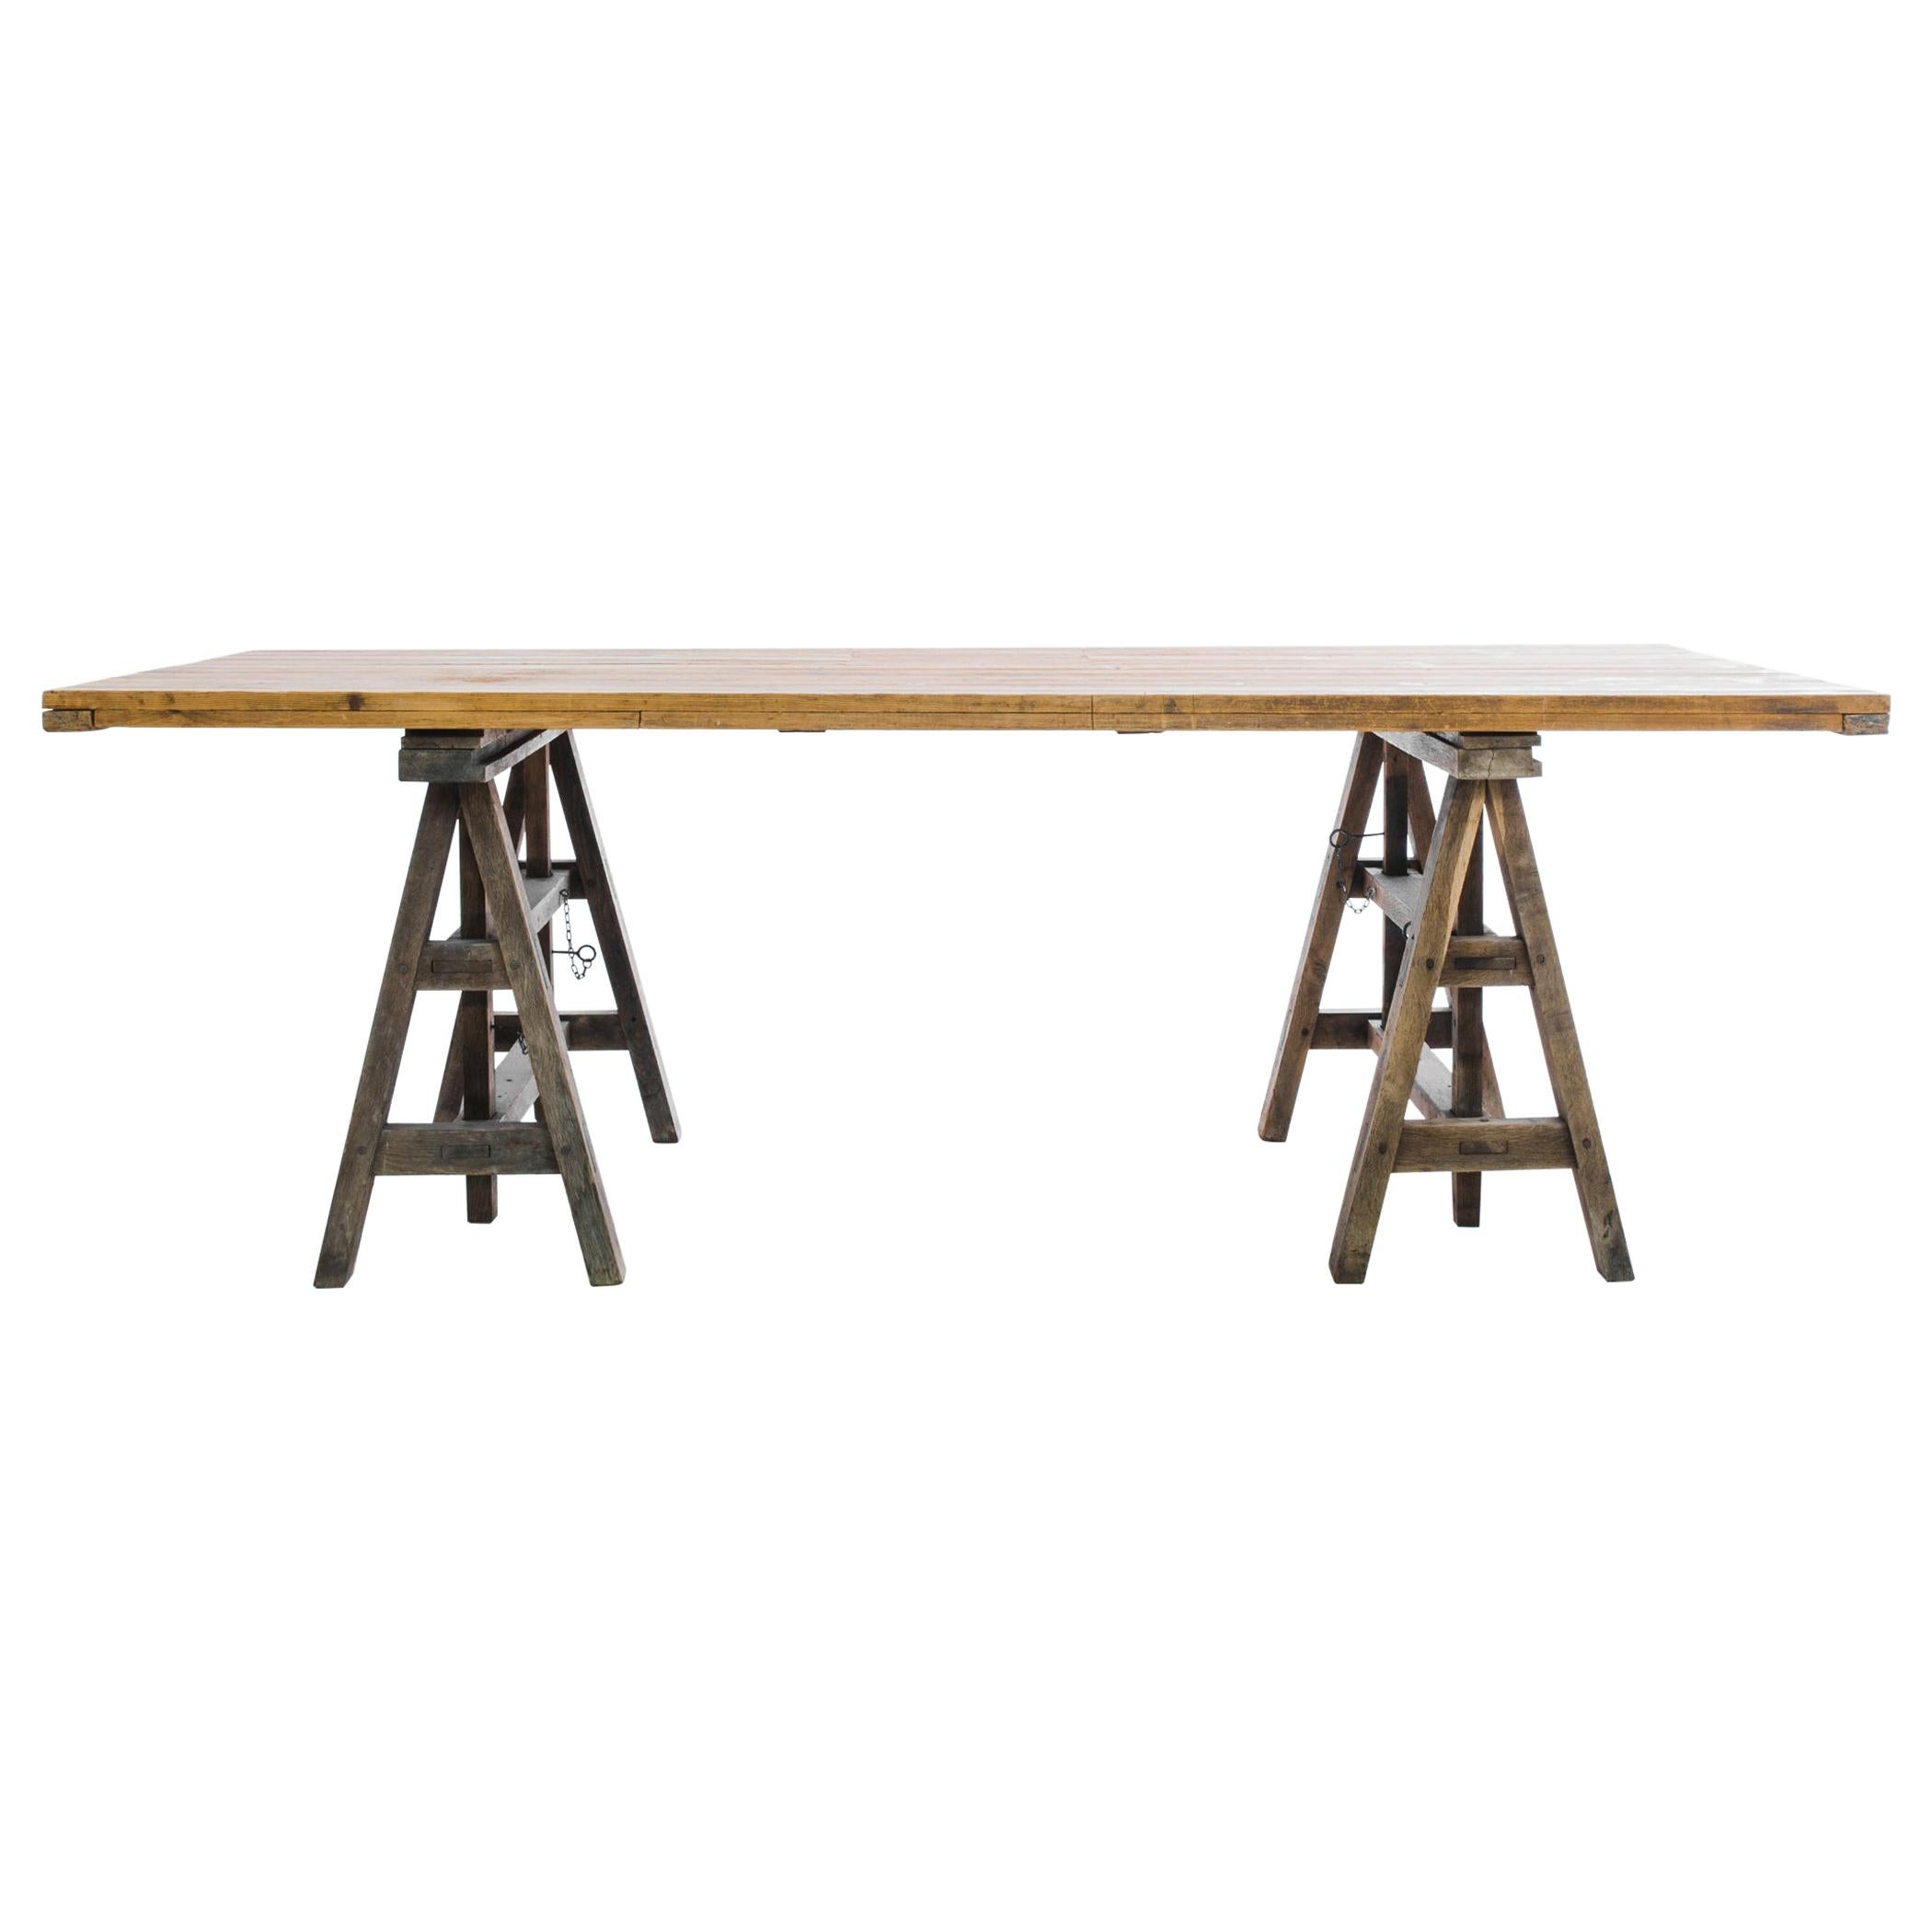 1920s French Sawhorse Table